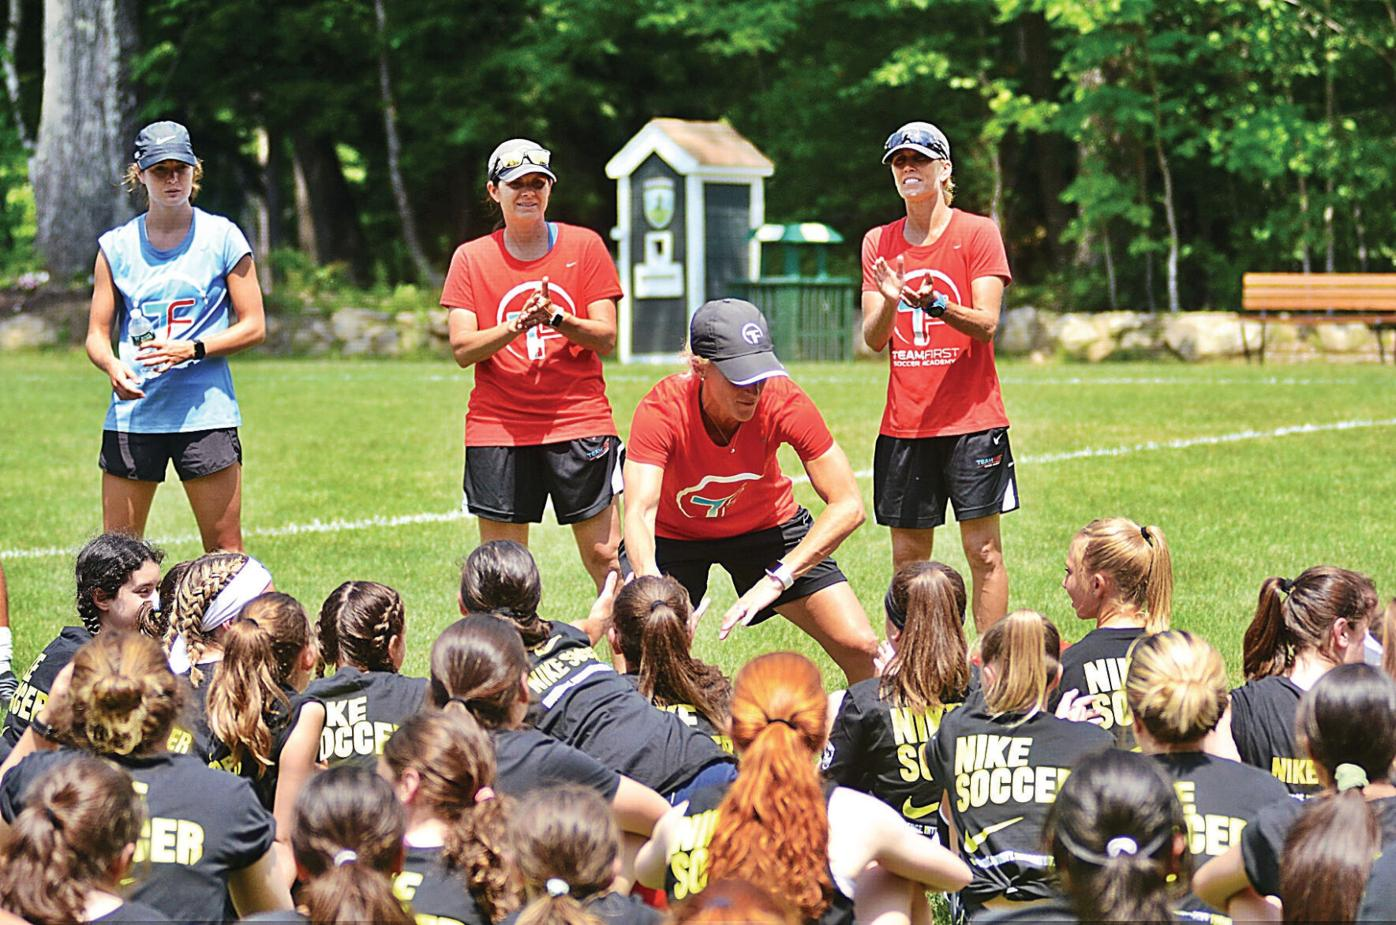 World Cup winners come to Berkshires for soccer camp